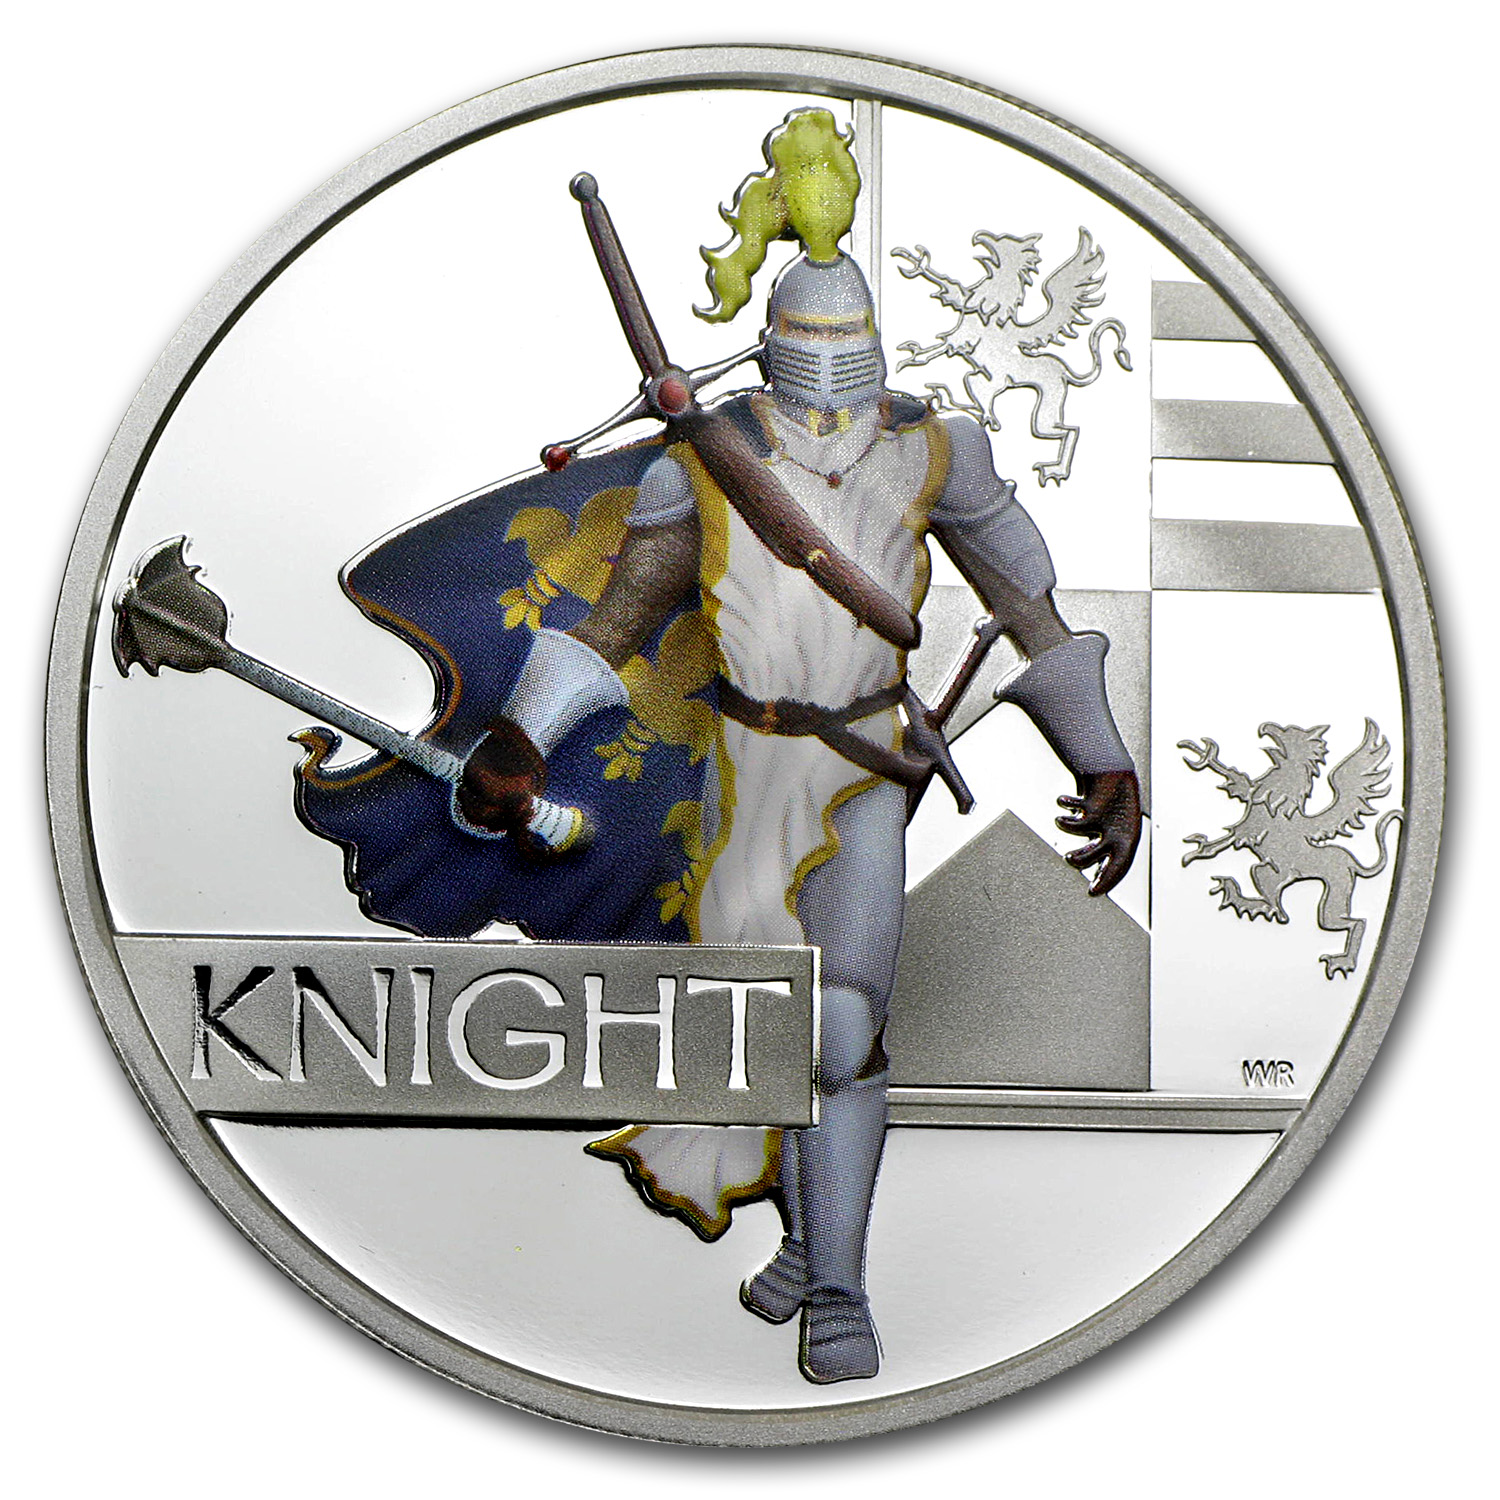 2010 1 oz Proof Silver Great Warriors Series (Knight)